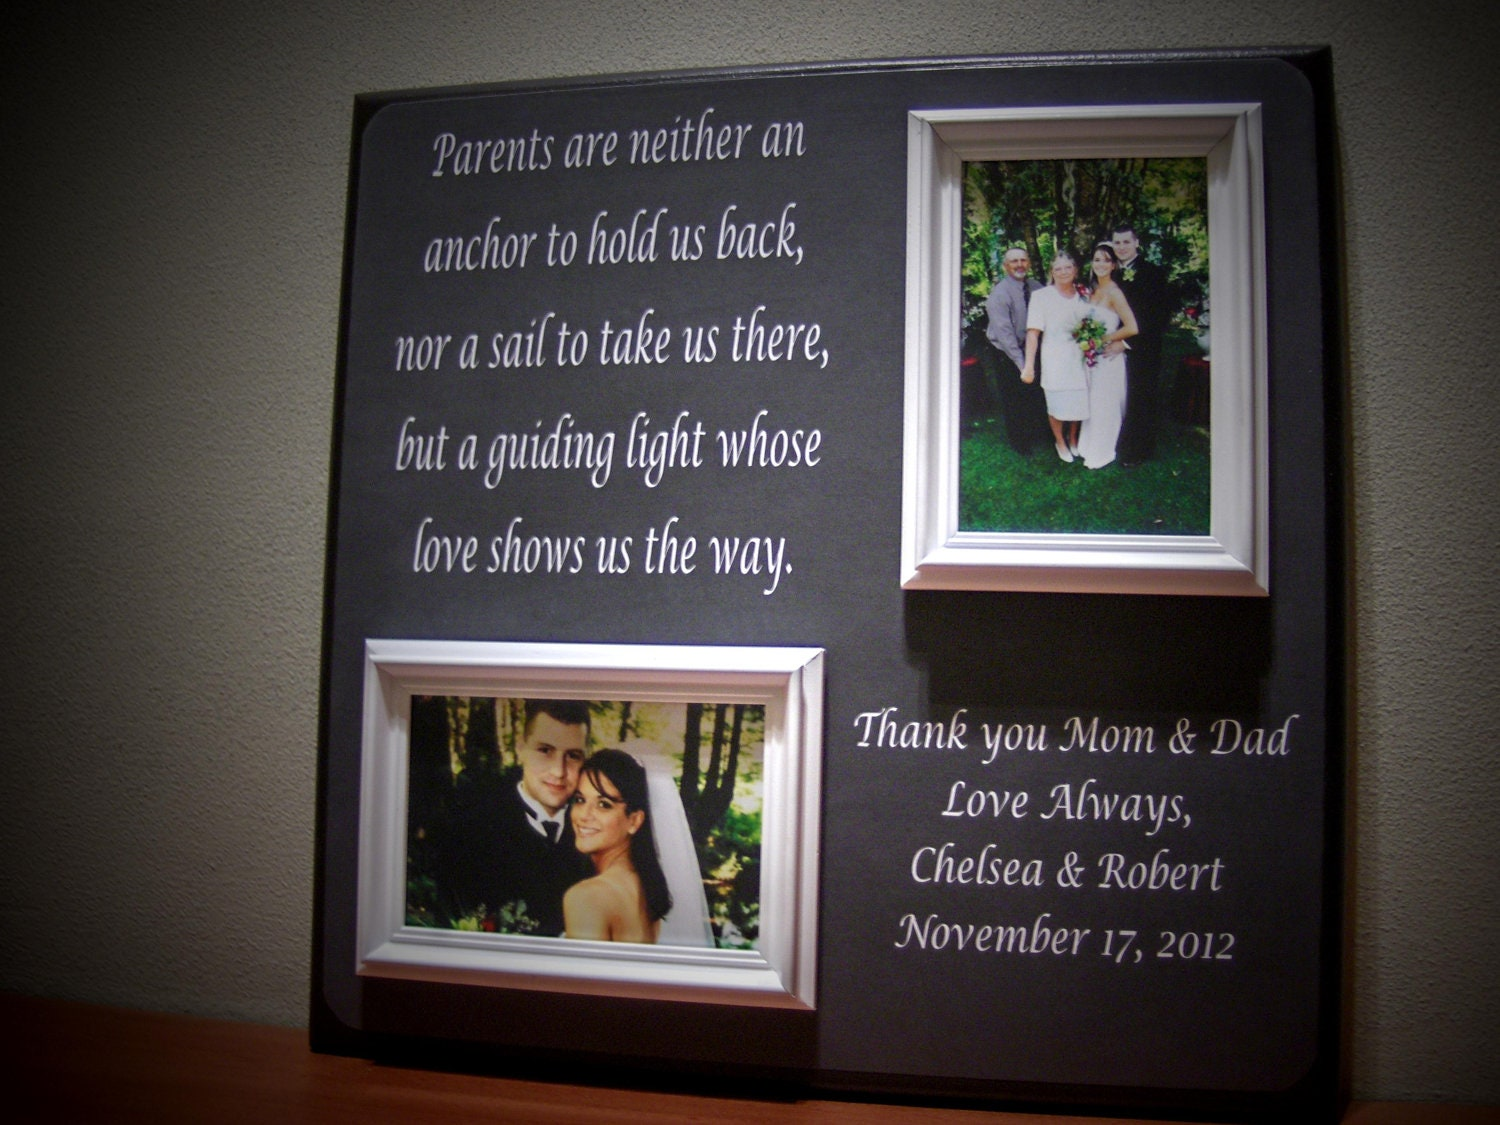 Wedding Day Gift For Parents : Parents Wedding Gift, Father of Mother of Thank You, Parents Are ...